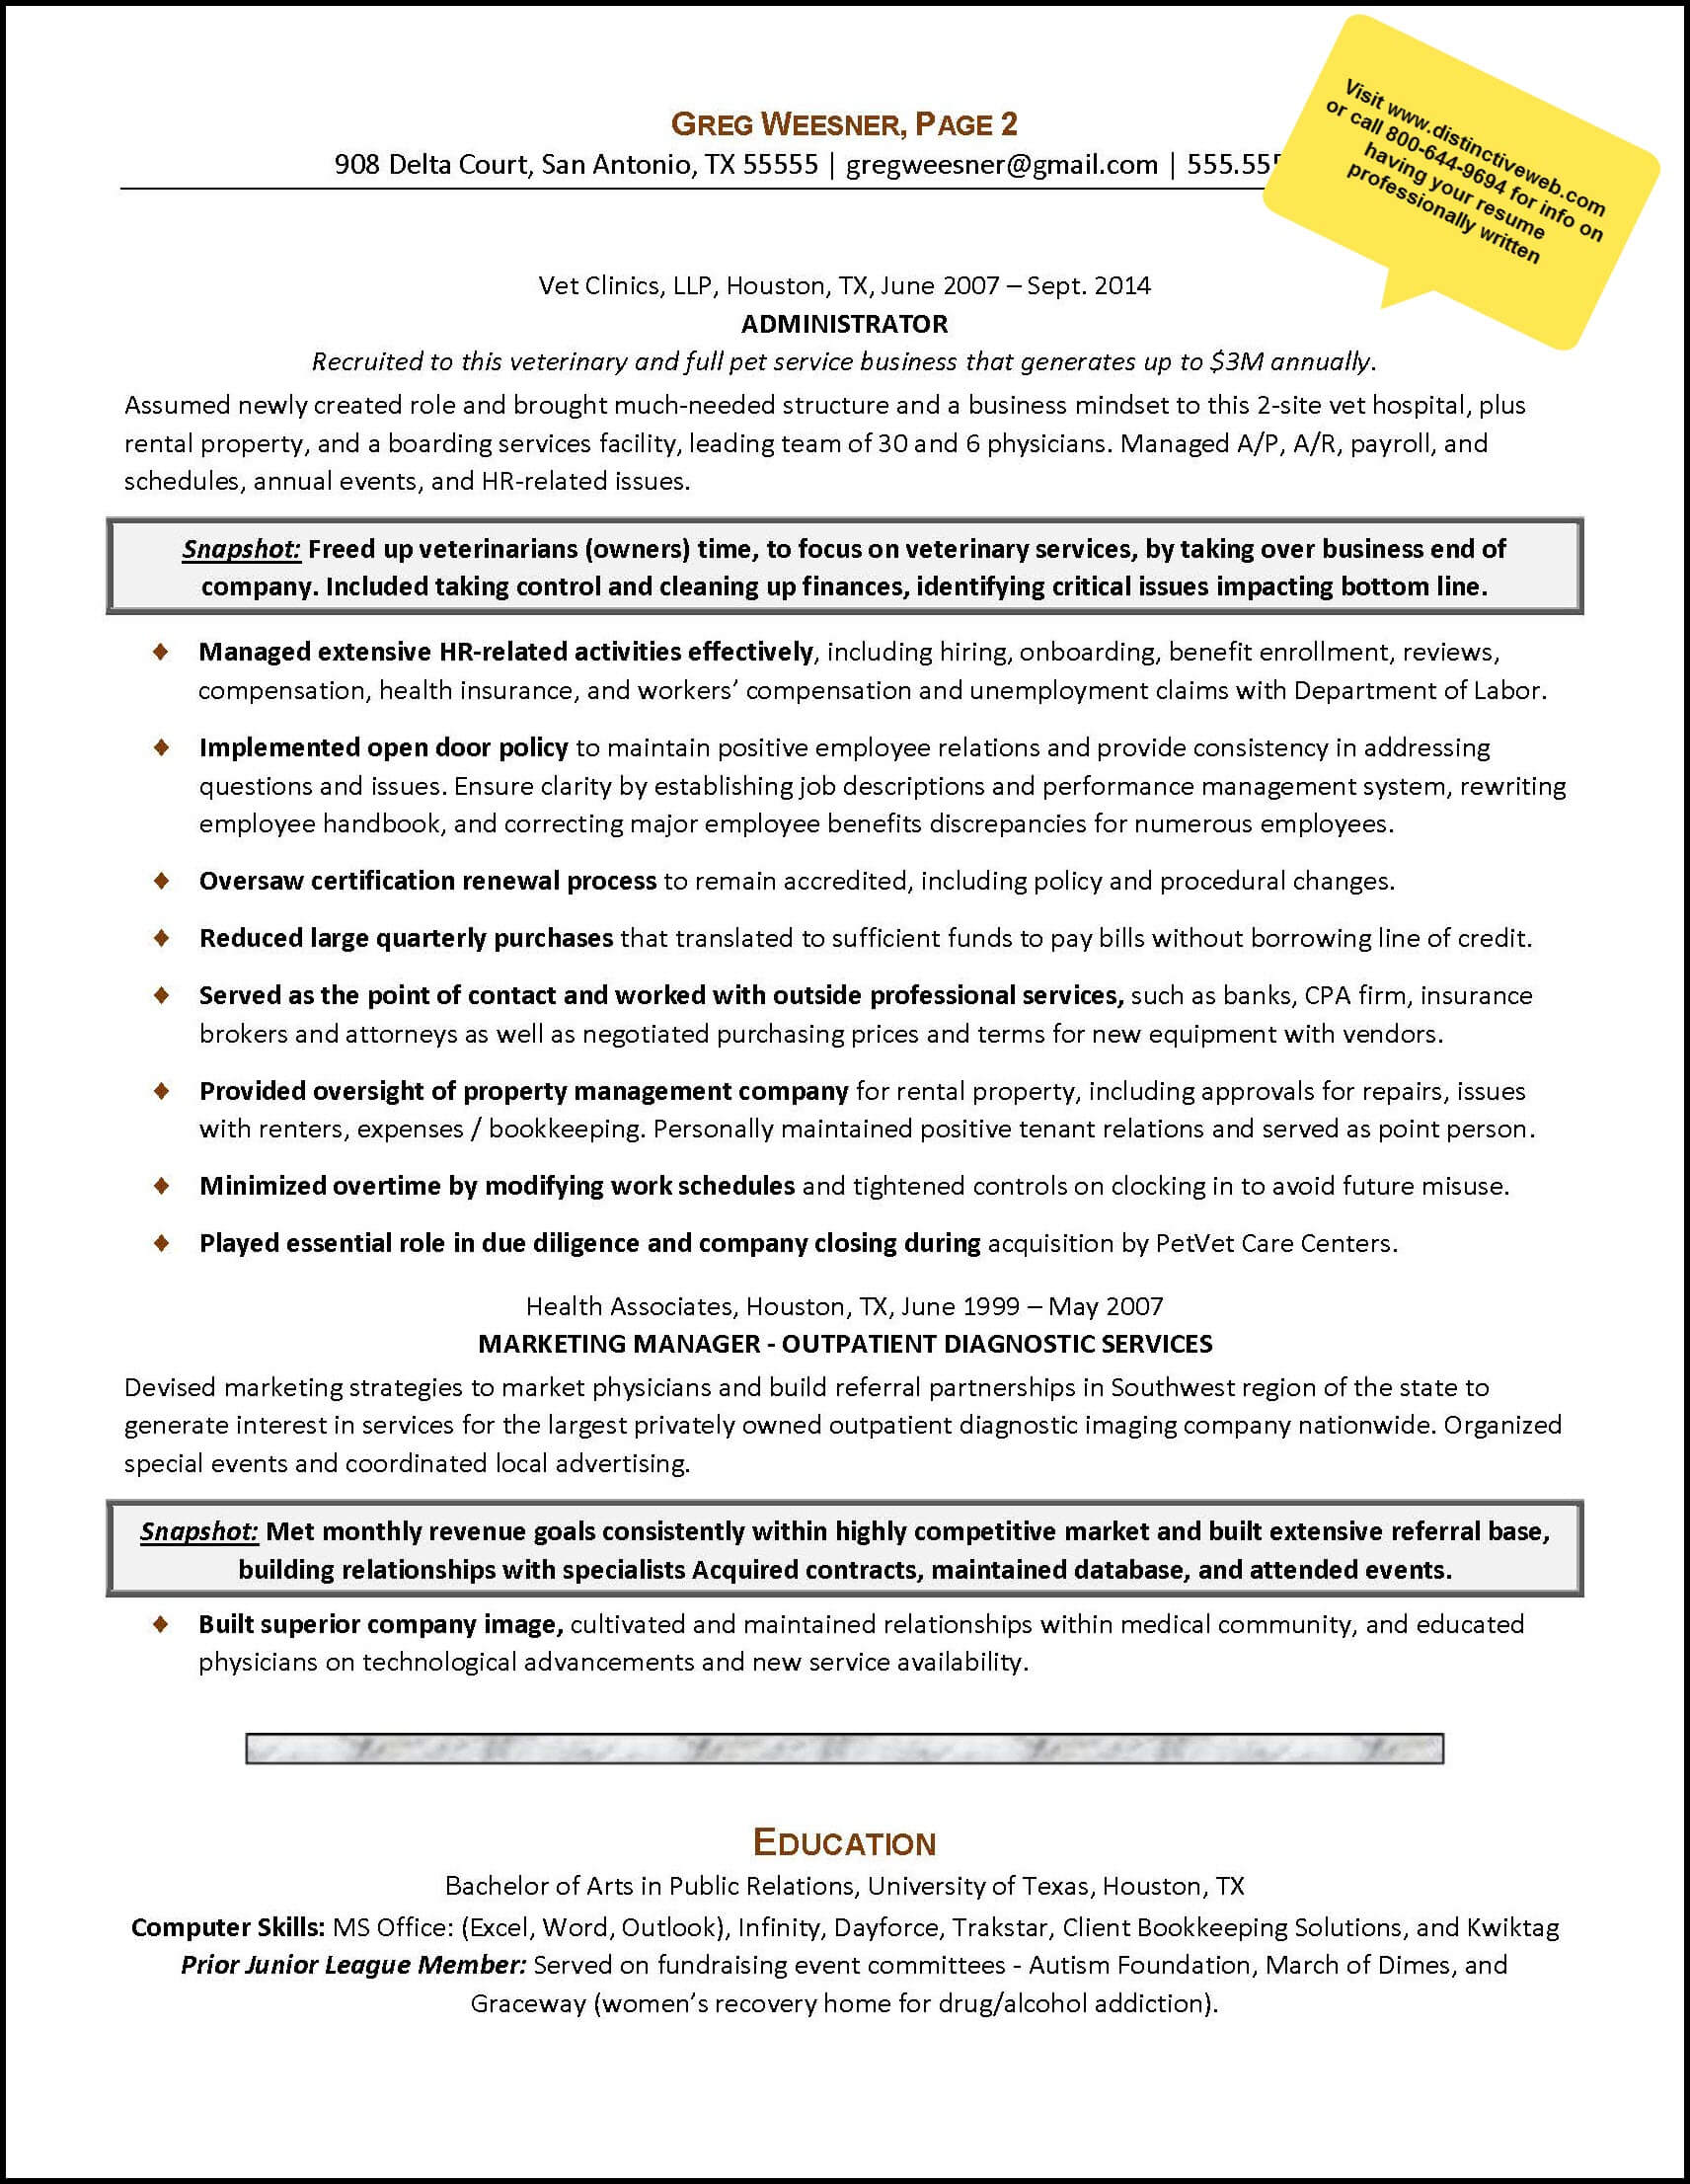 sample career change resume for an administrative services manager page 2 - Transition Resume Examples